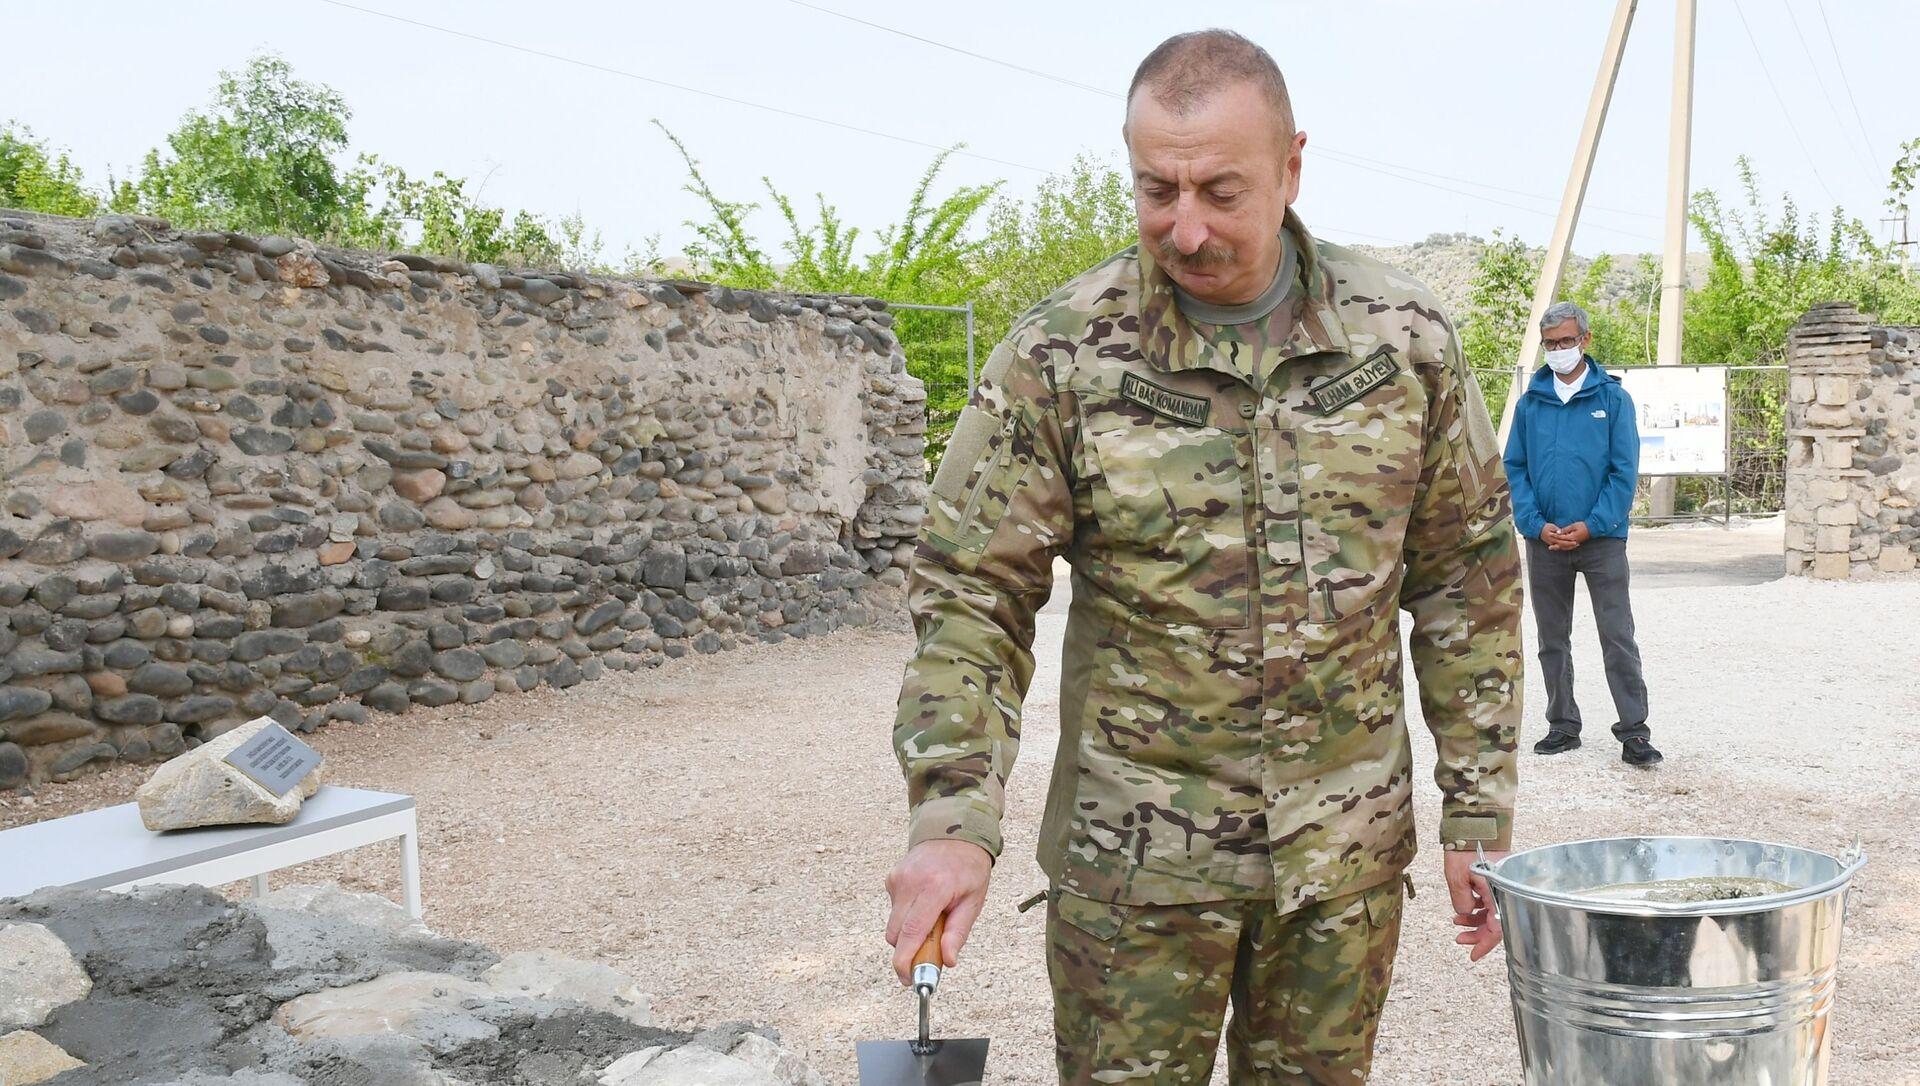 In this handout photo released by Azerbaijani Presidential Press Office, Azerbaijani President Ilham Aliyev visits a mosque in Zangilan District, Azerbaijan. Jabrayil and Zangilan districts came under the control of the Azerbaijani Armed Forces in 2020. - Sputnik International, 1920, 25.07.2021